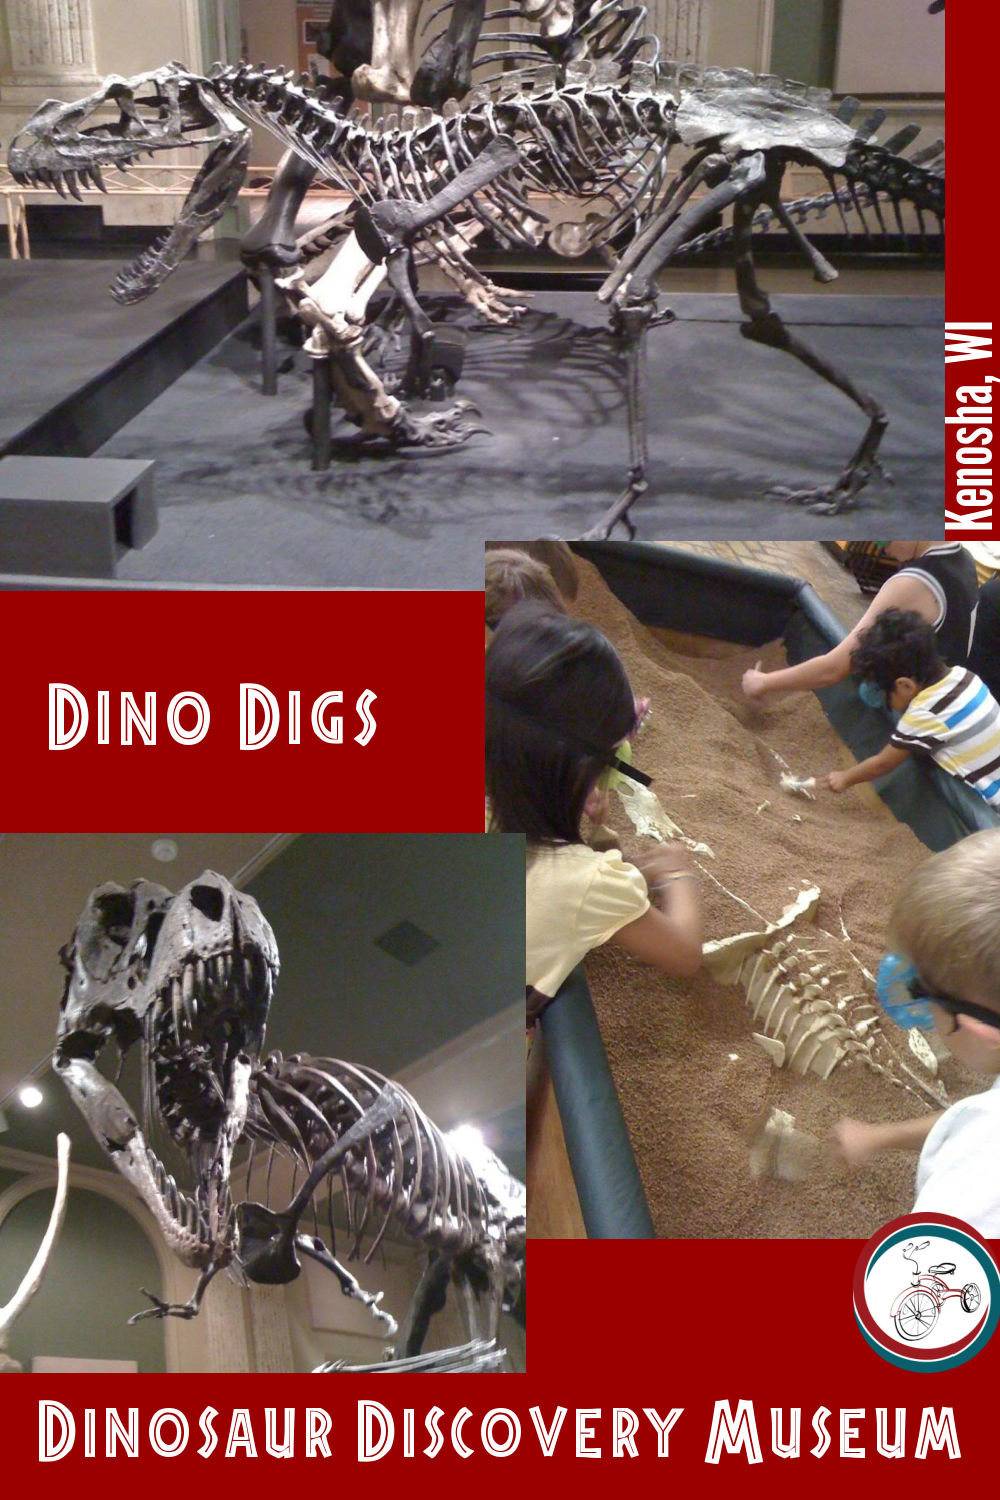 Dino Digs at The Dinosaur Discovery Museum